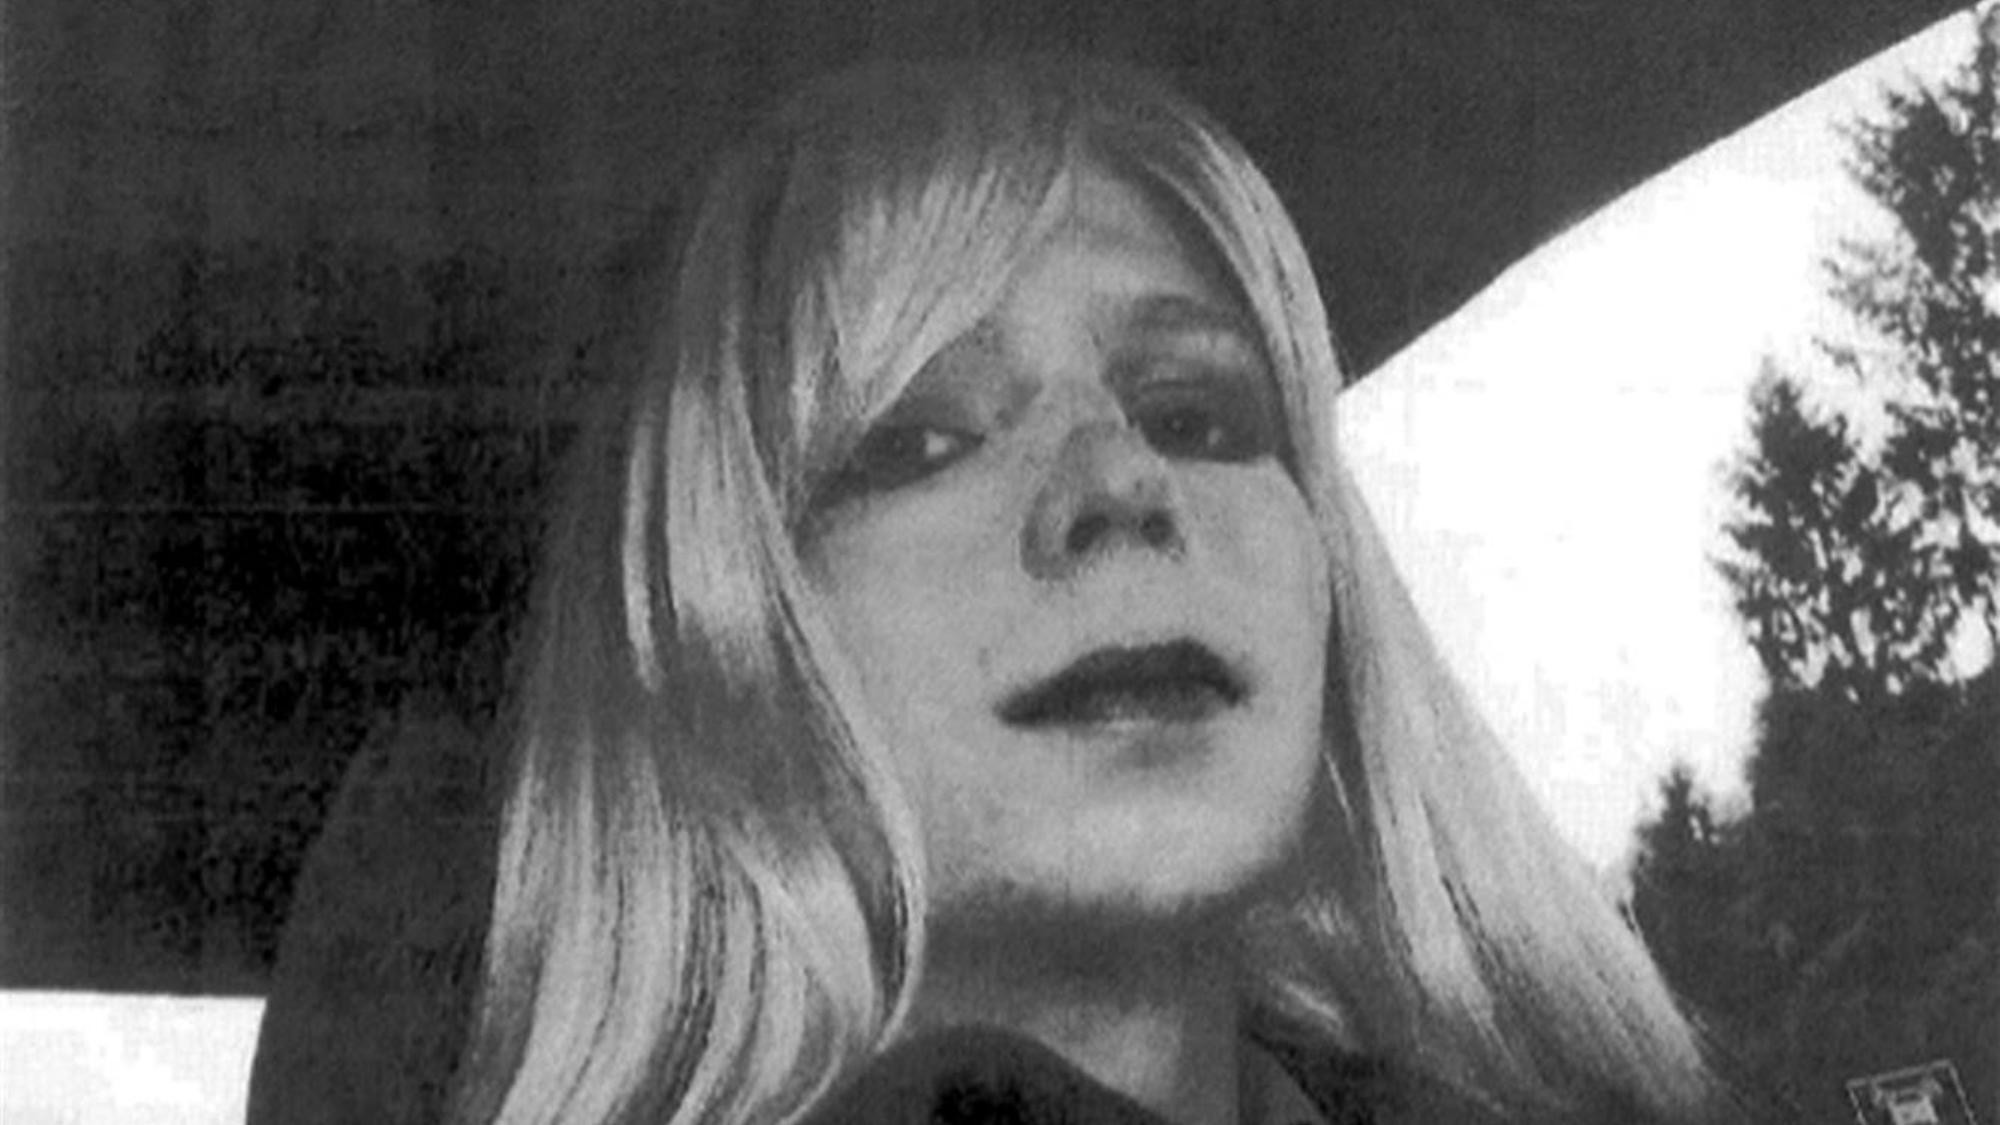 chelsea manning exposes the hypocrisy of lgbt and mental health progress in the usa